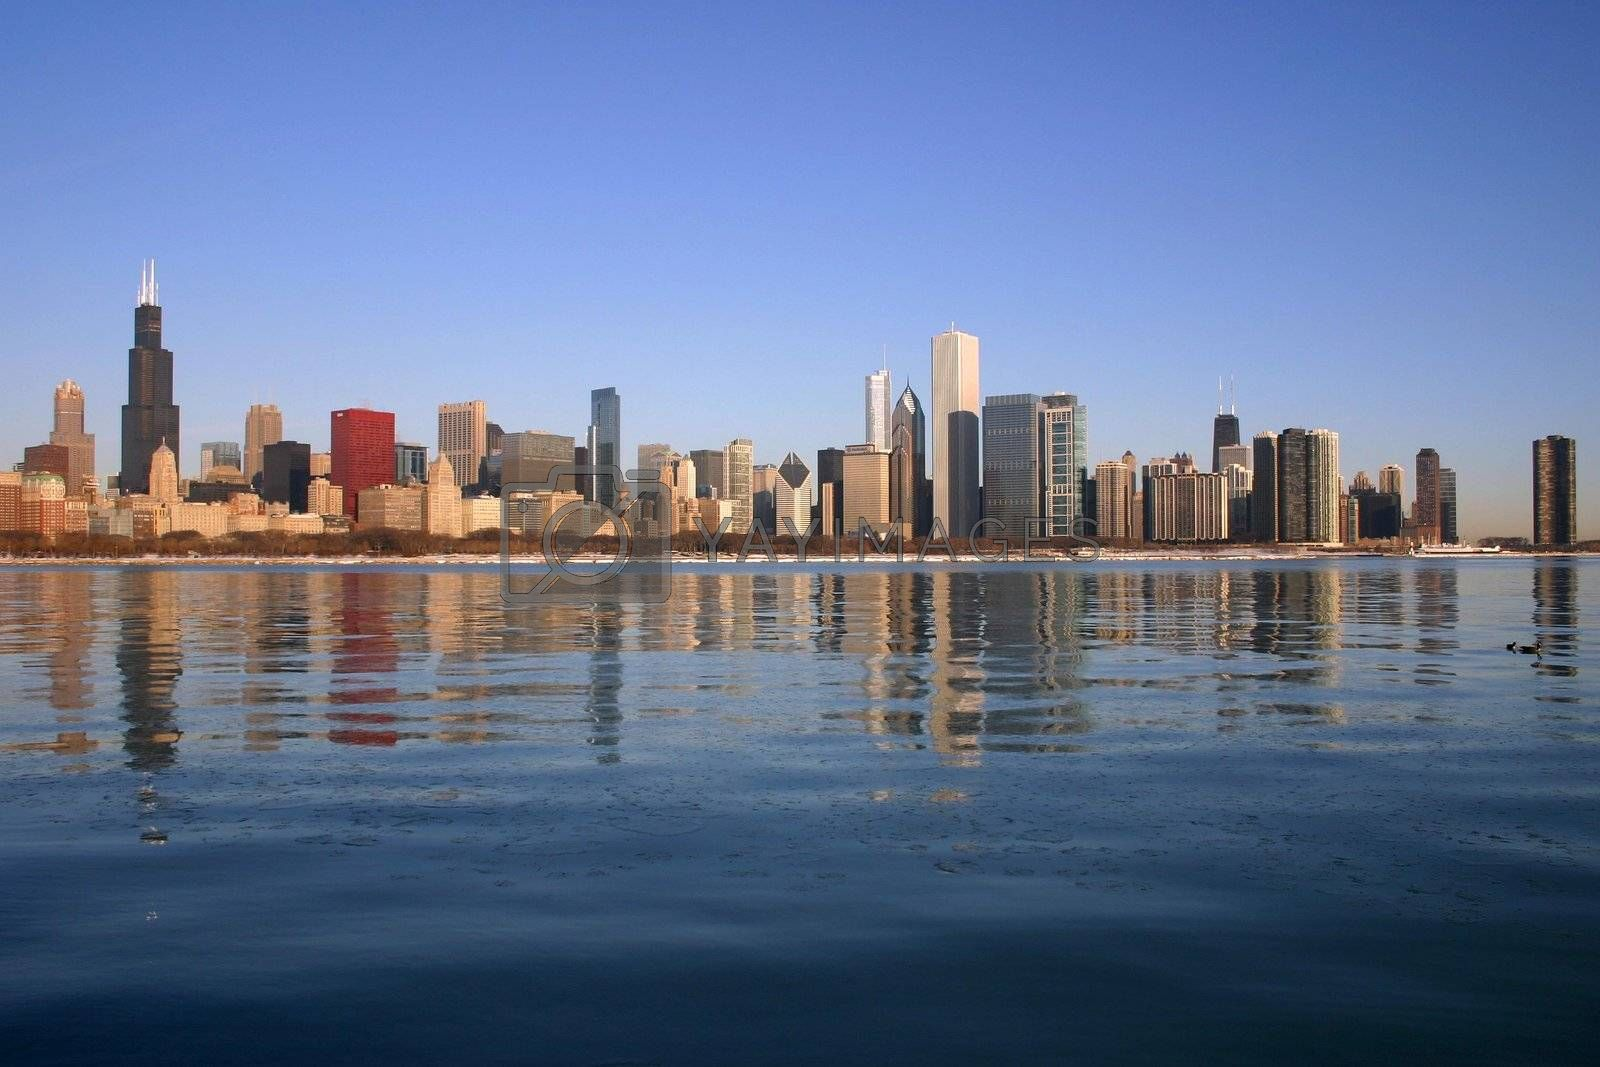 The Chicago skyline at by day, photographed from the Planetarium across the frozen surface of Lake Michigan.